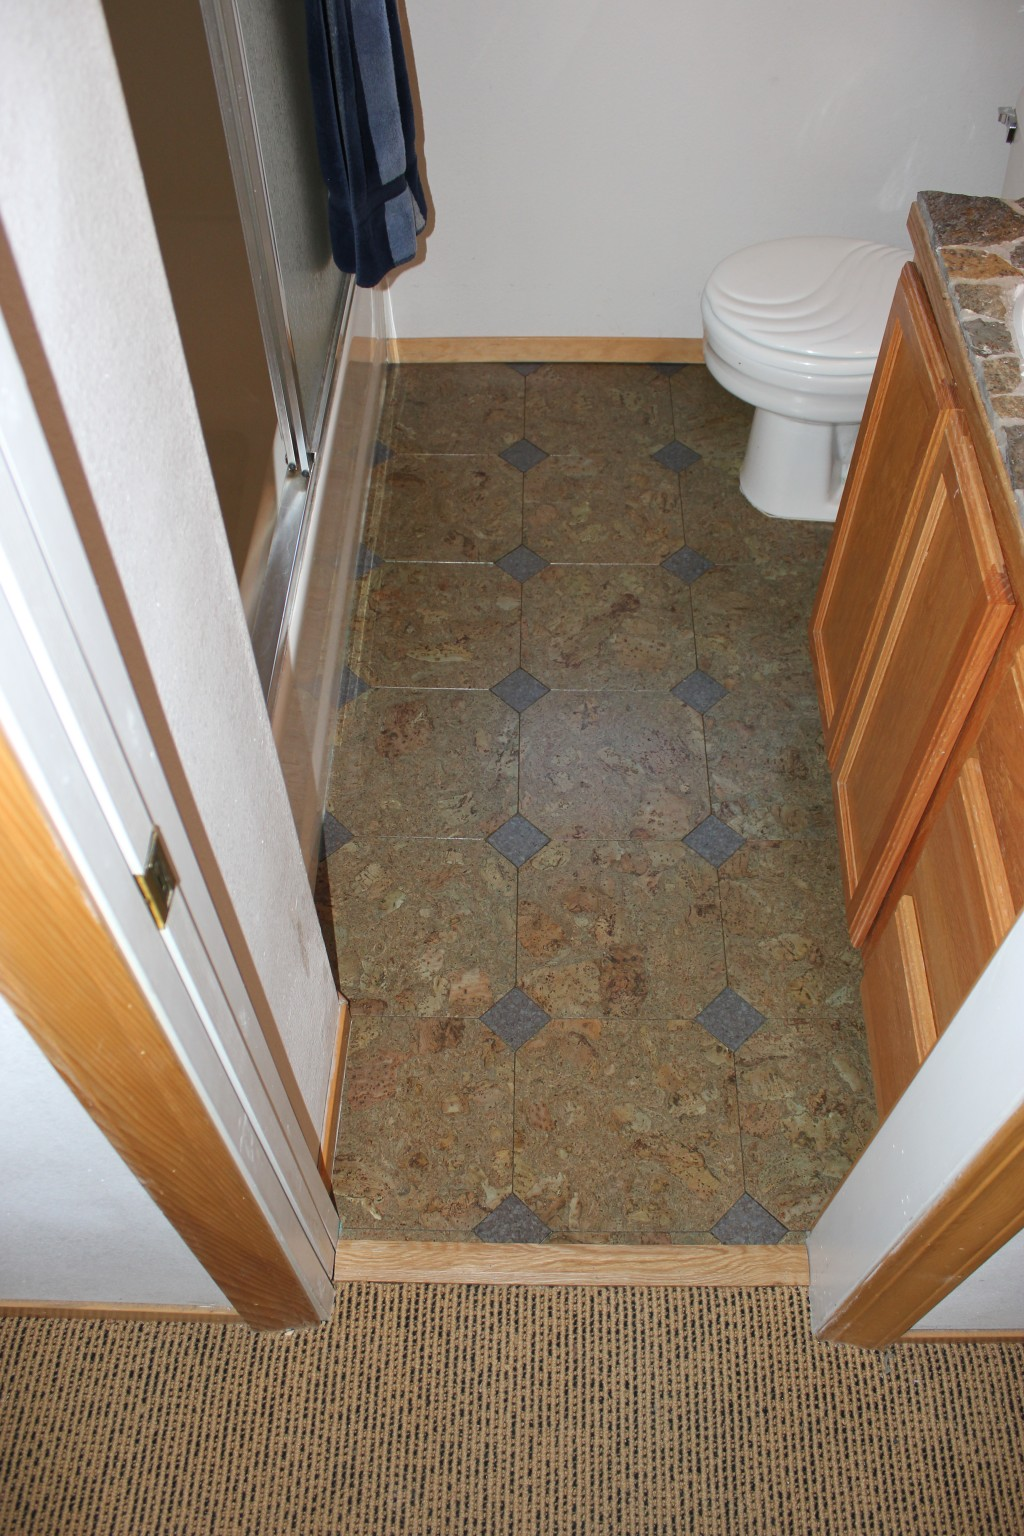 2 traditional cork floors reviews durability jelinek cork flooring reviews cork flooring reviews in kitchen cork flooring in basement reviews cork flooring in bathroom reviews what i